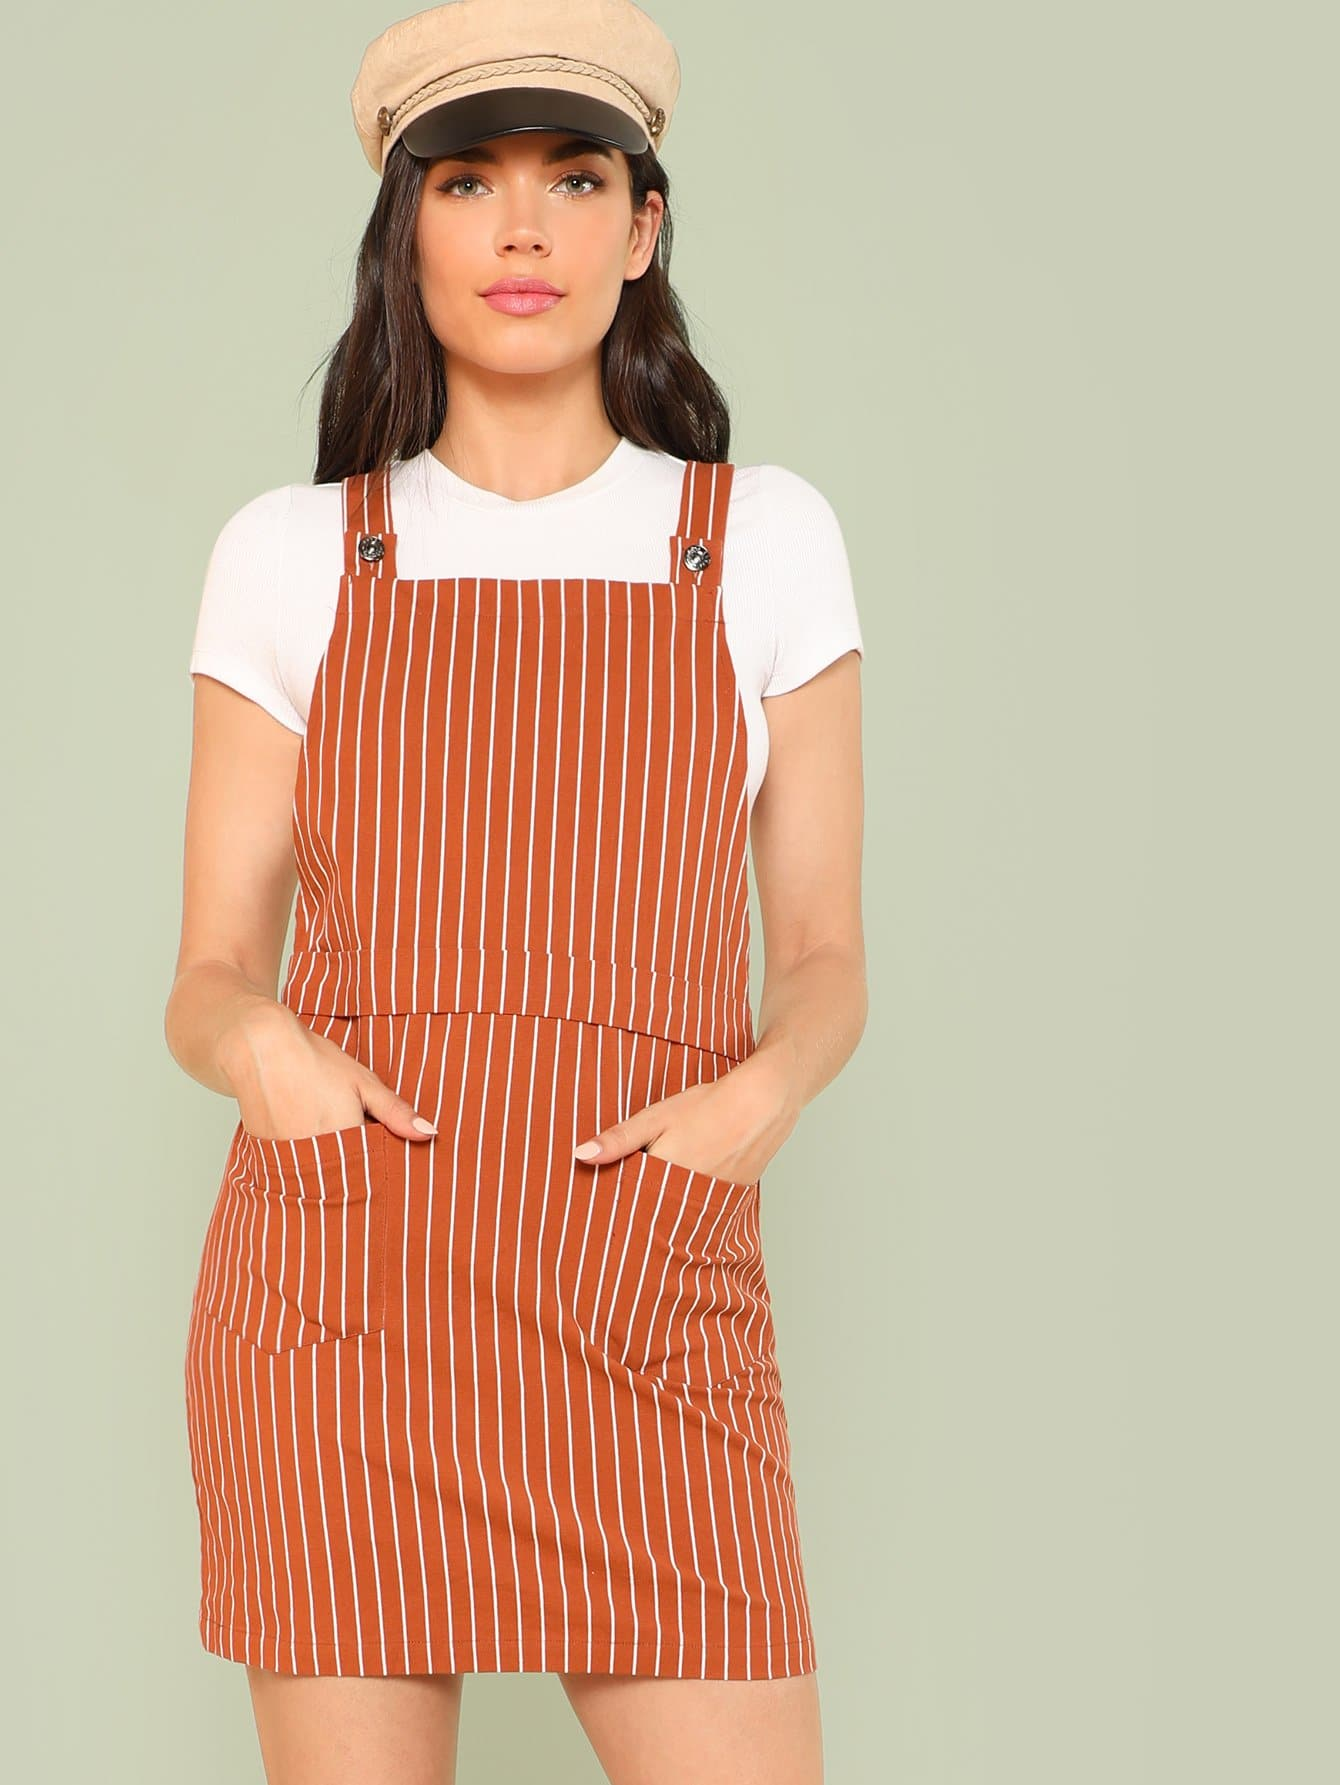 Pocket Patched Vertical Striped Overall Dress overall yumi overall